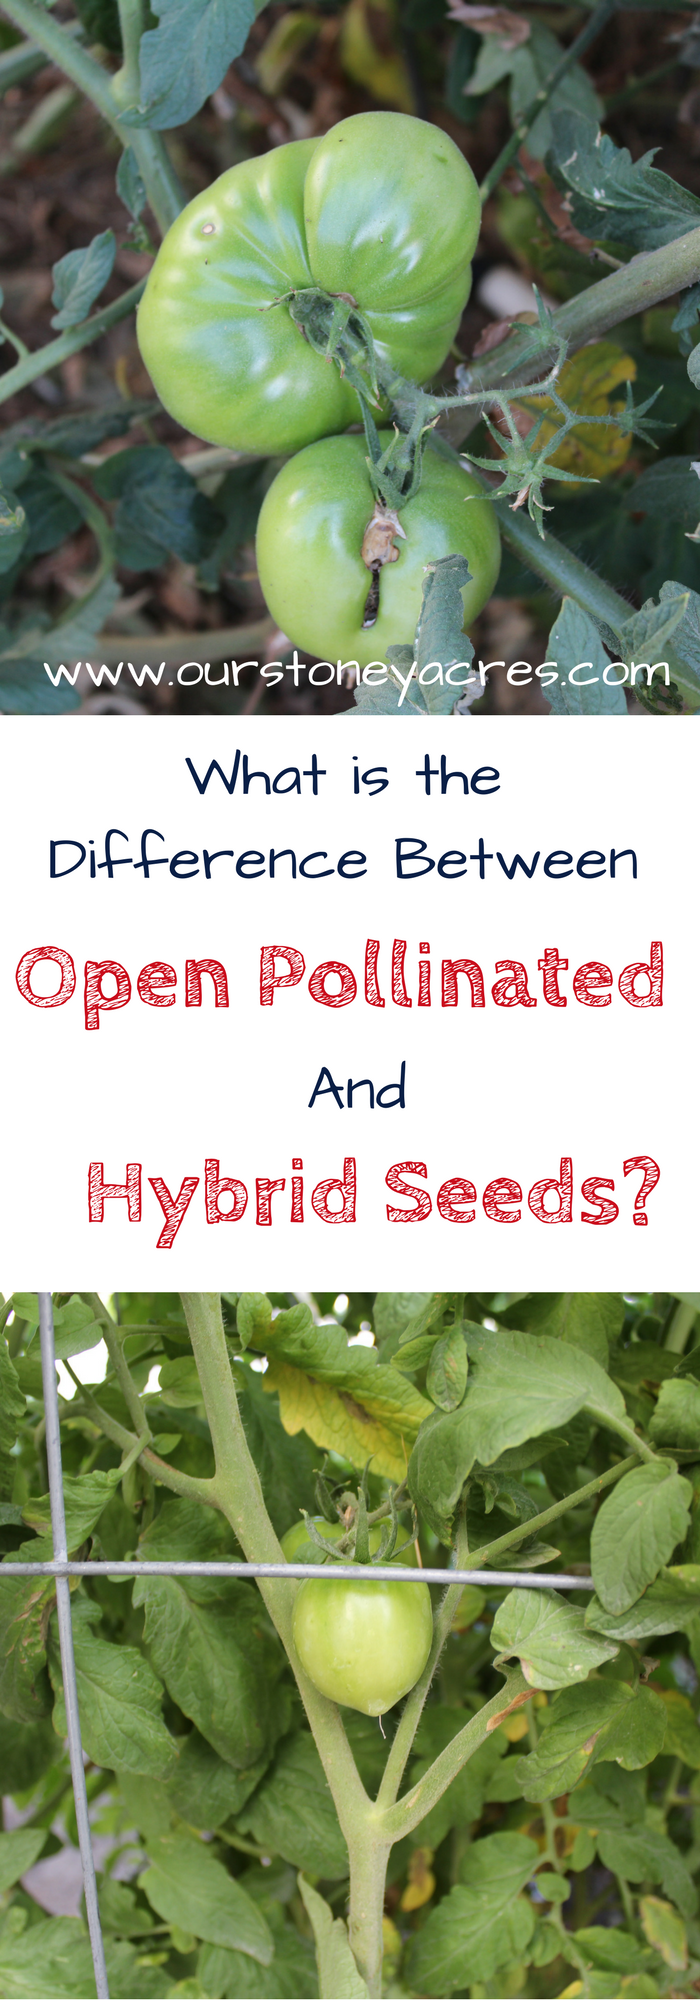 The difference between open pollinated and hybrid seeds